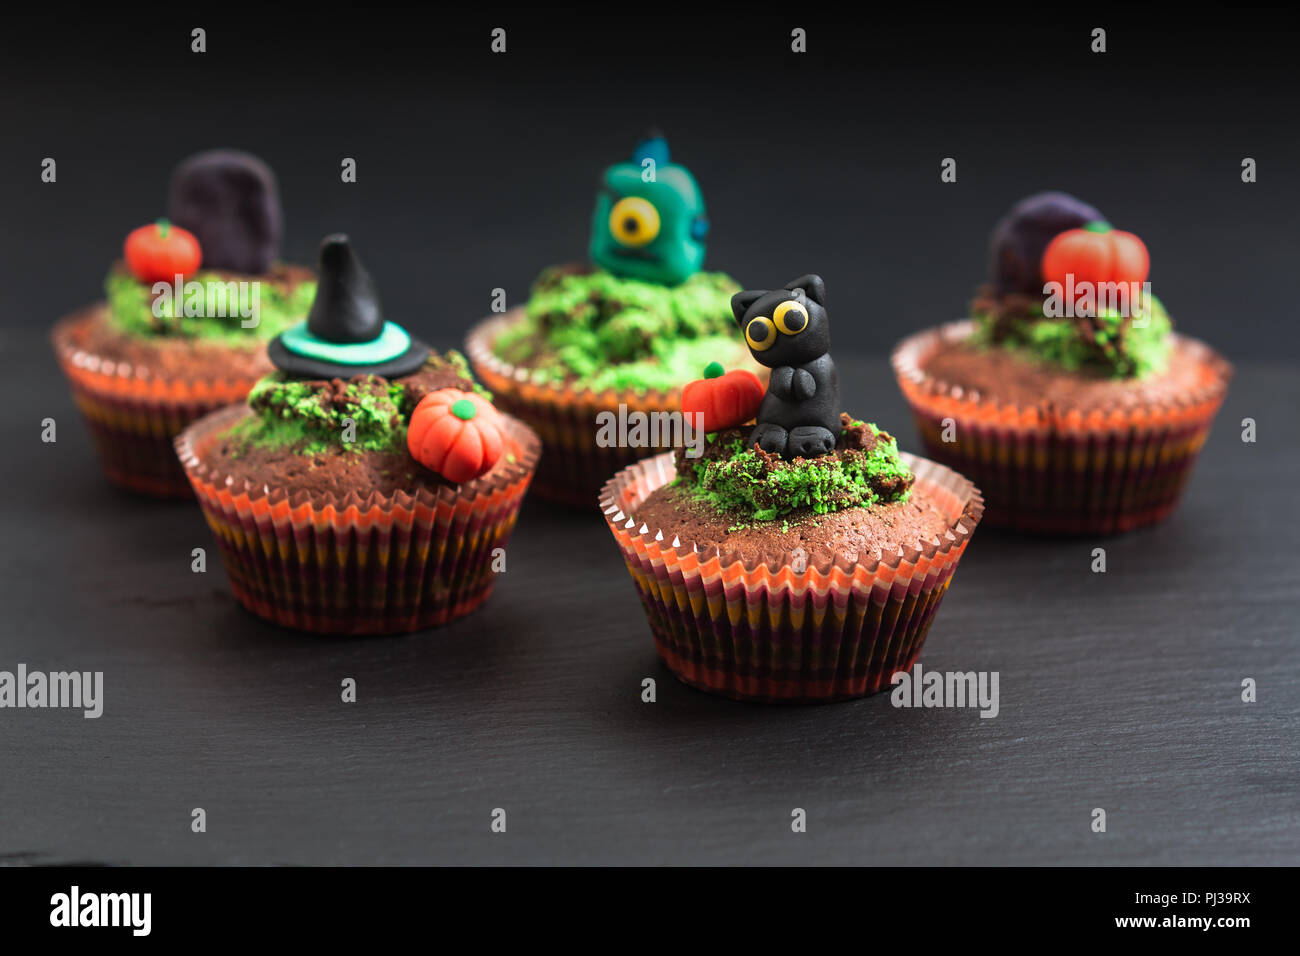 Fondant Halloween Decorations.Halloween Holiday Food Colorful Fancy Brownies Cupcake With Fondant Decorate Stock Photo Alamy